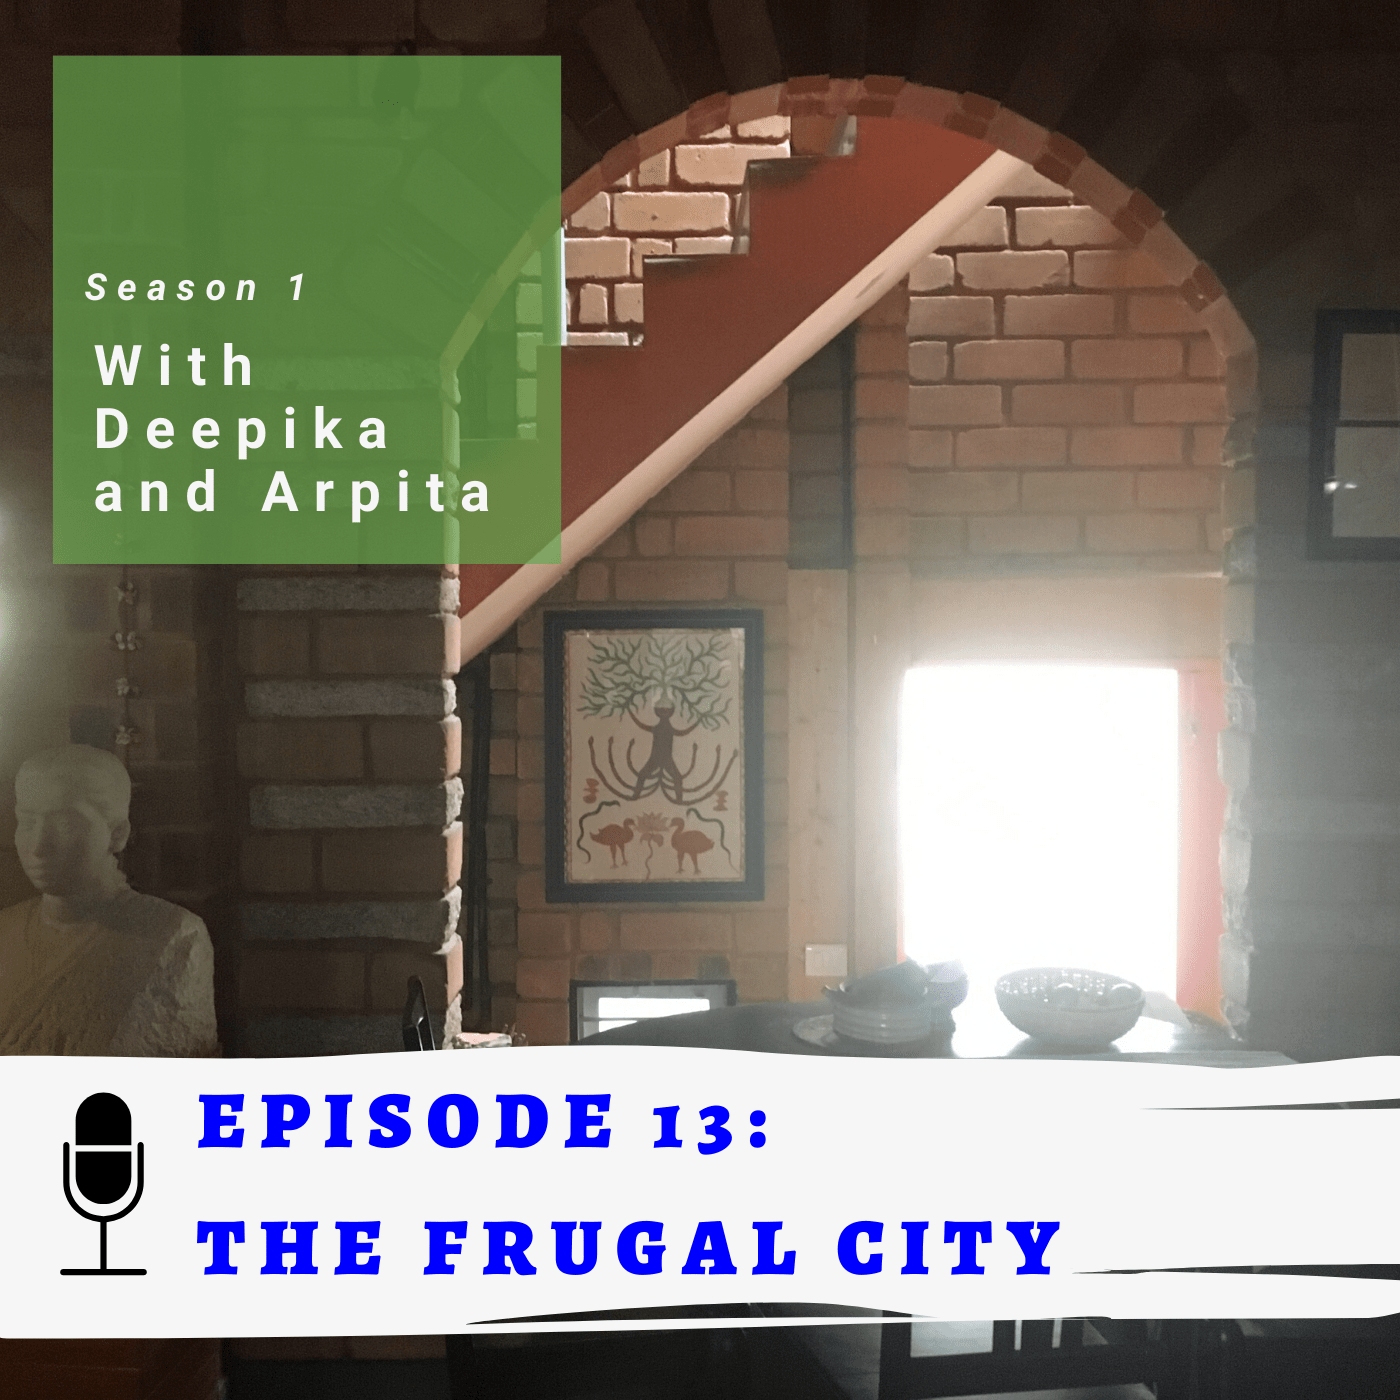 A picture of a mud home with light in the background. Under it, it says: Episode 13: The Frugal City.